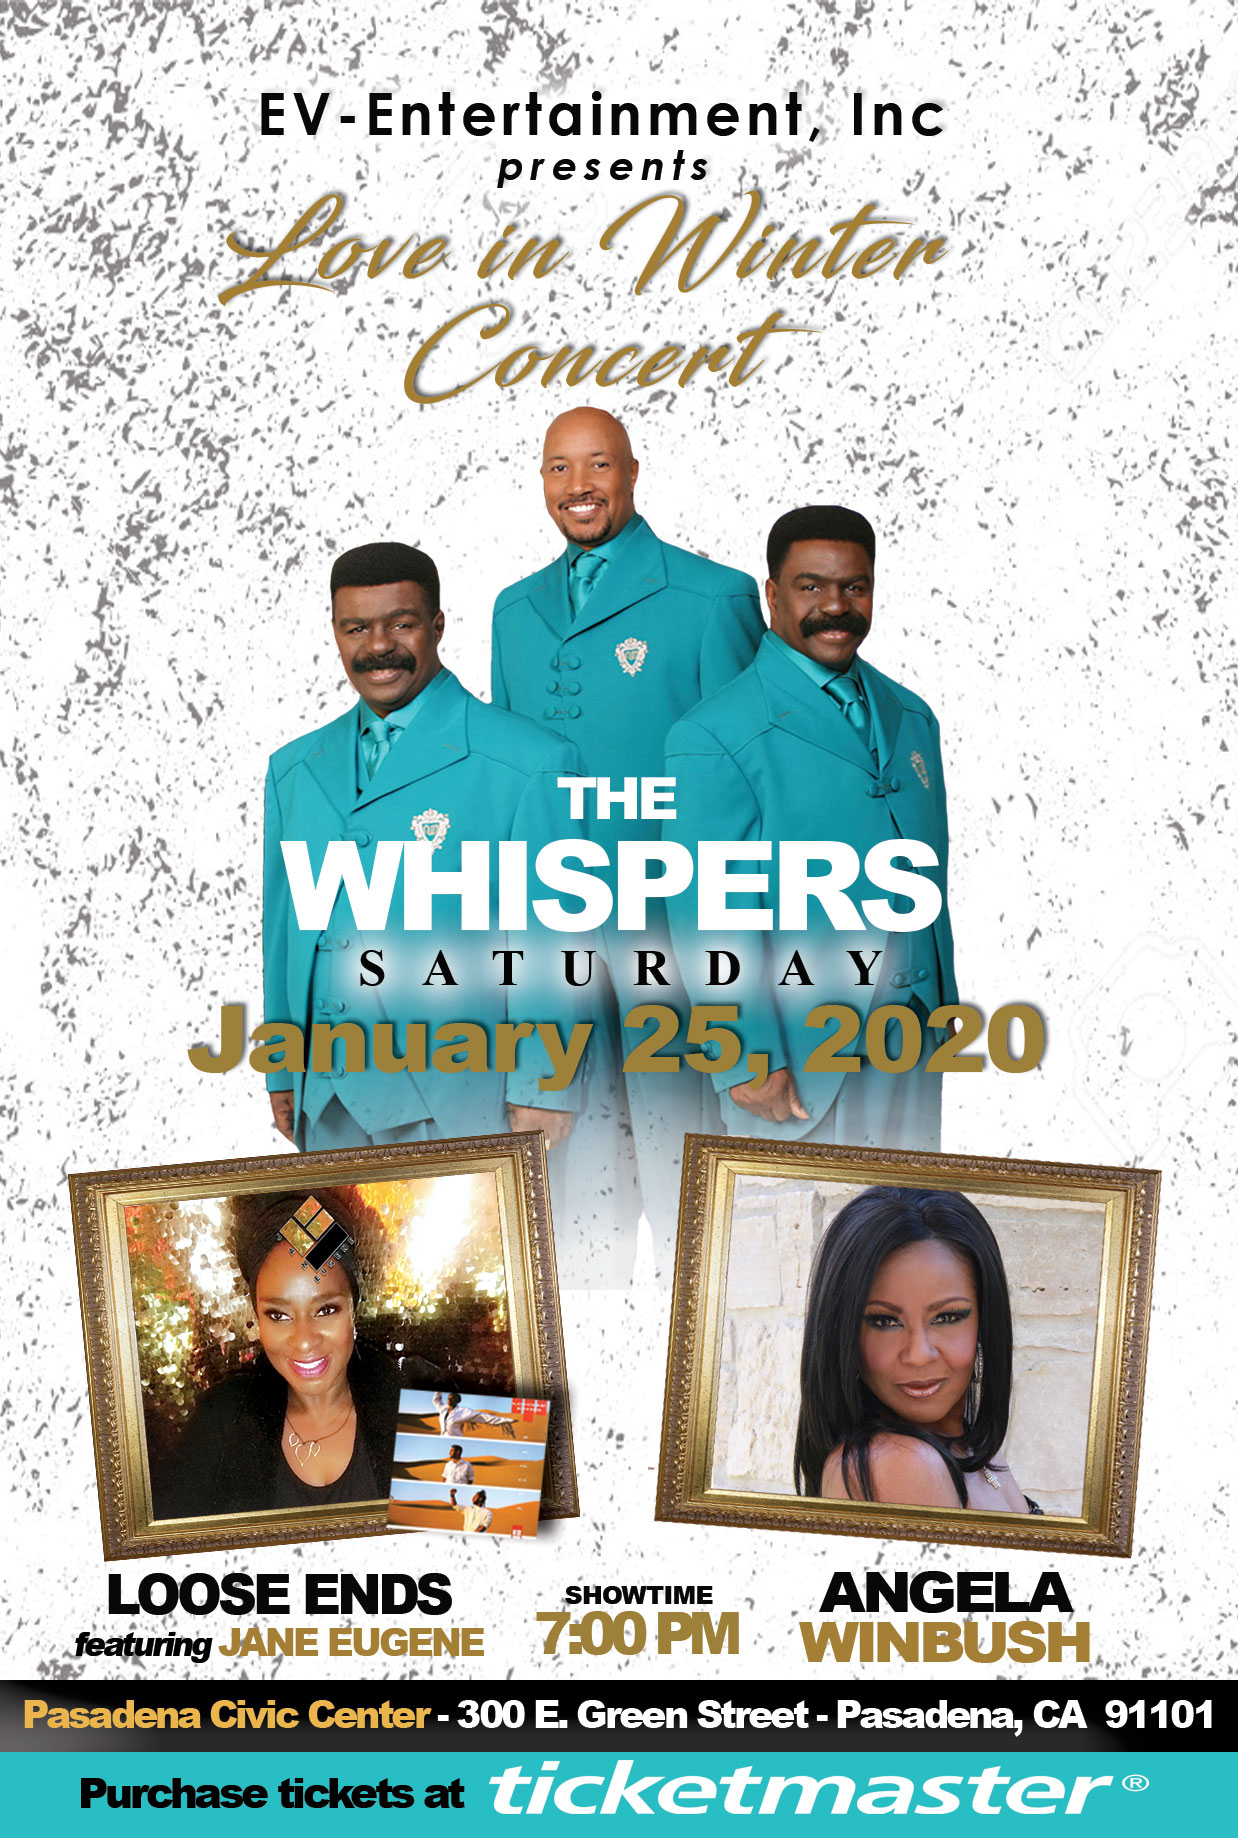 The Whispers in Concert